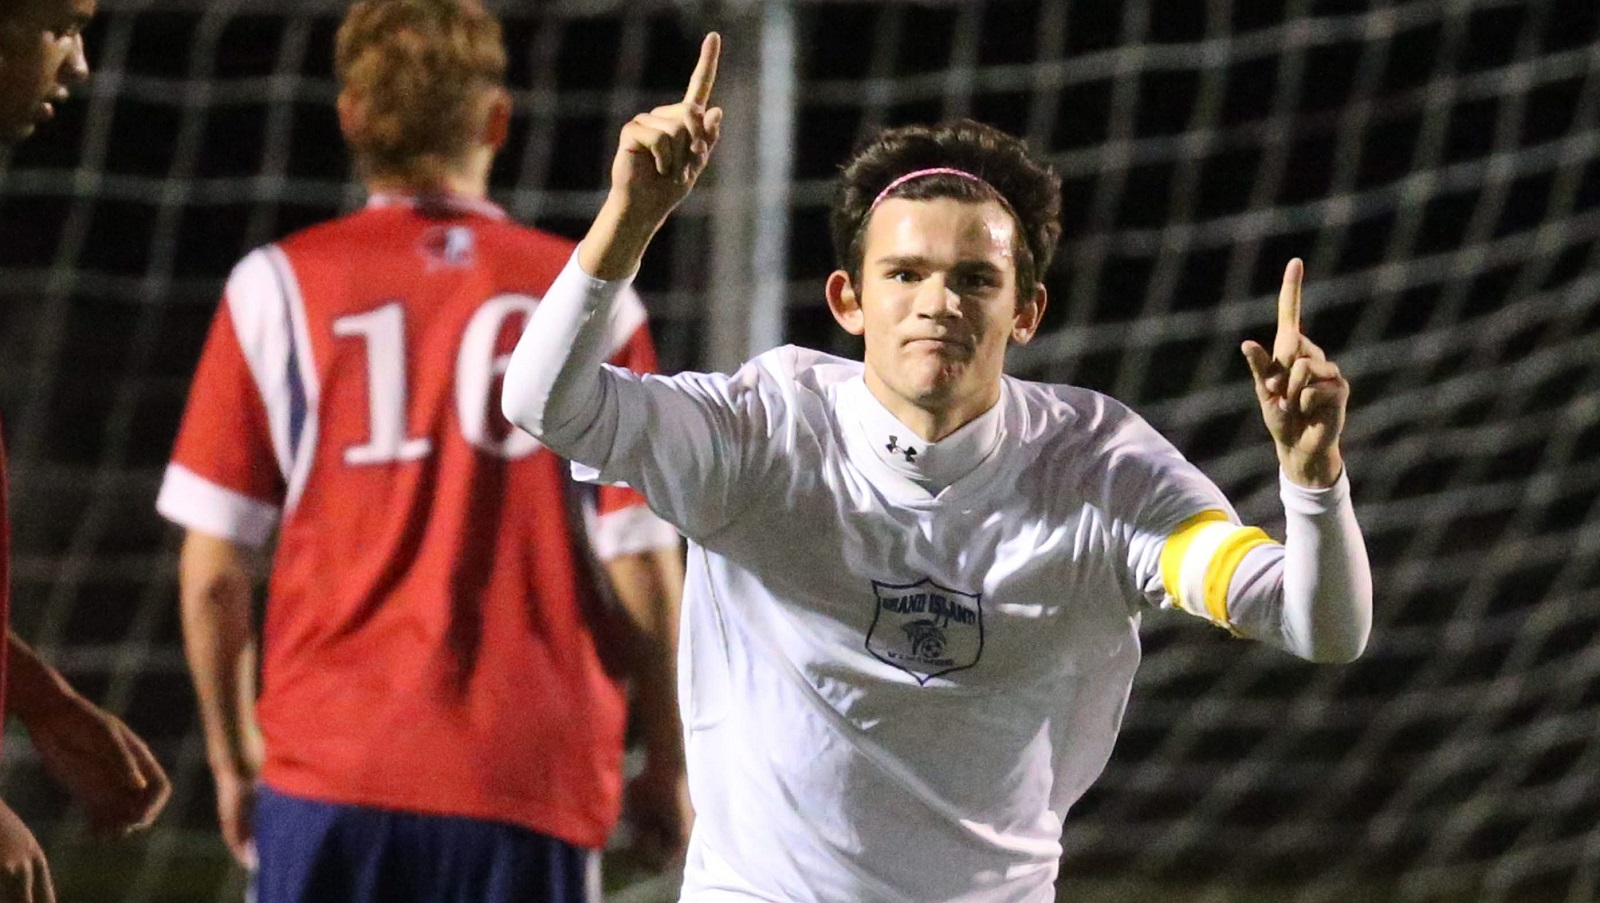 Troy Brady celebrates a goal against Iroquois in the 2015 sectional playoffs. (James P. McCoy/Buffalo News file photo)